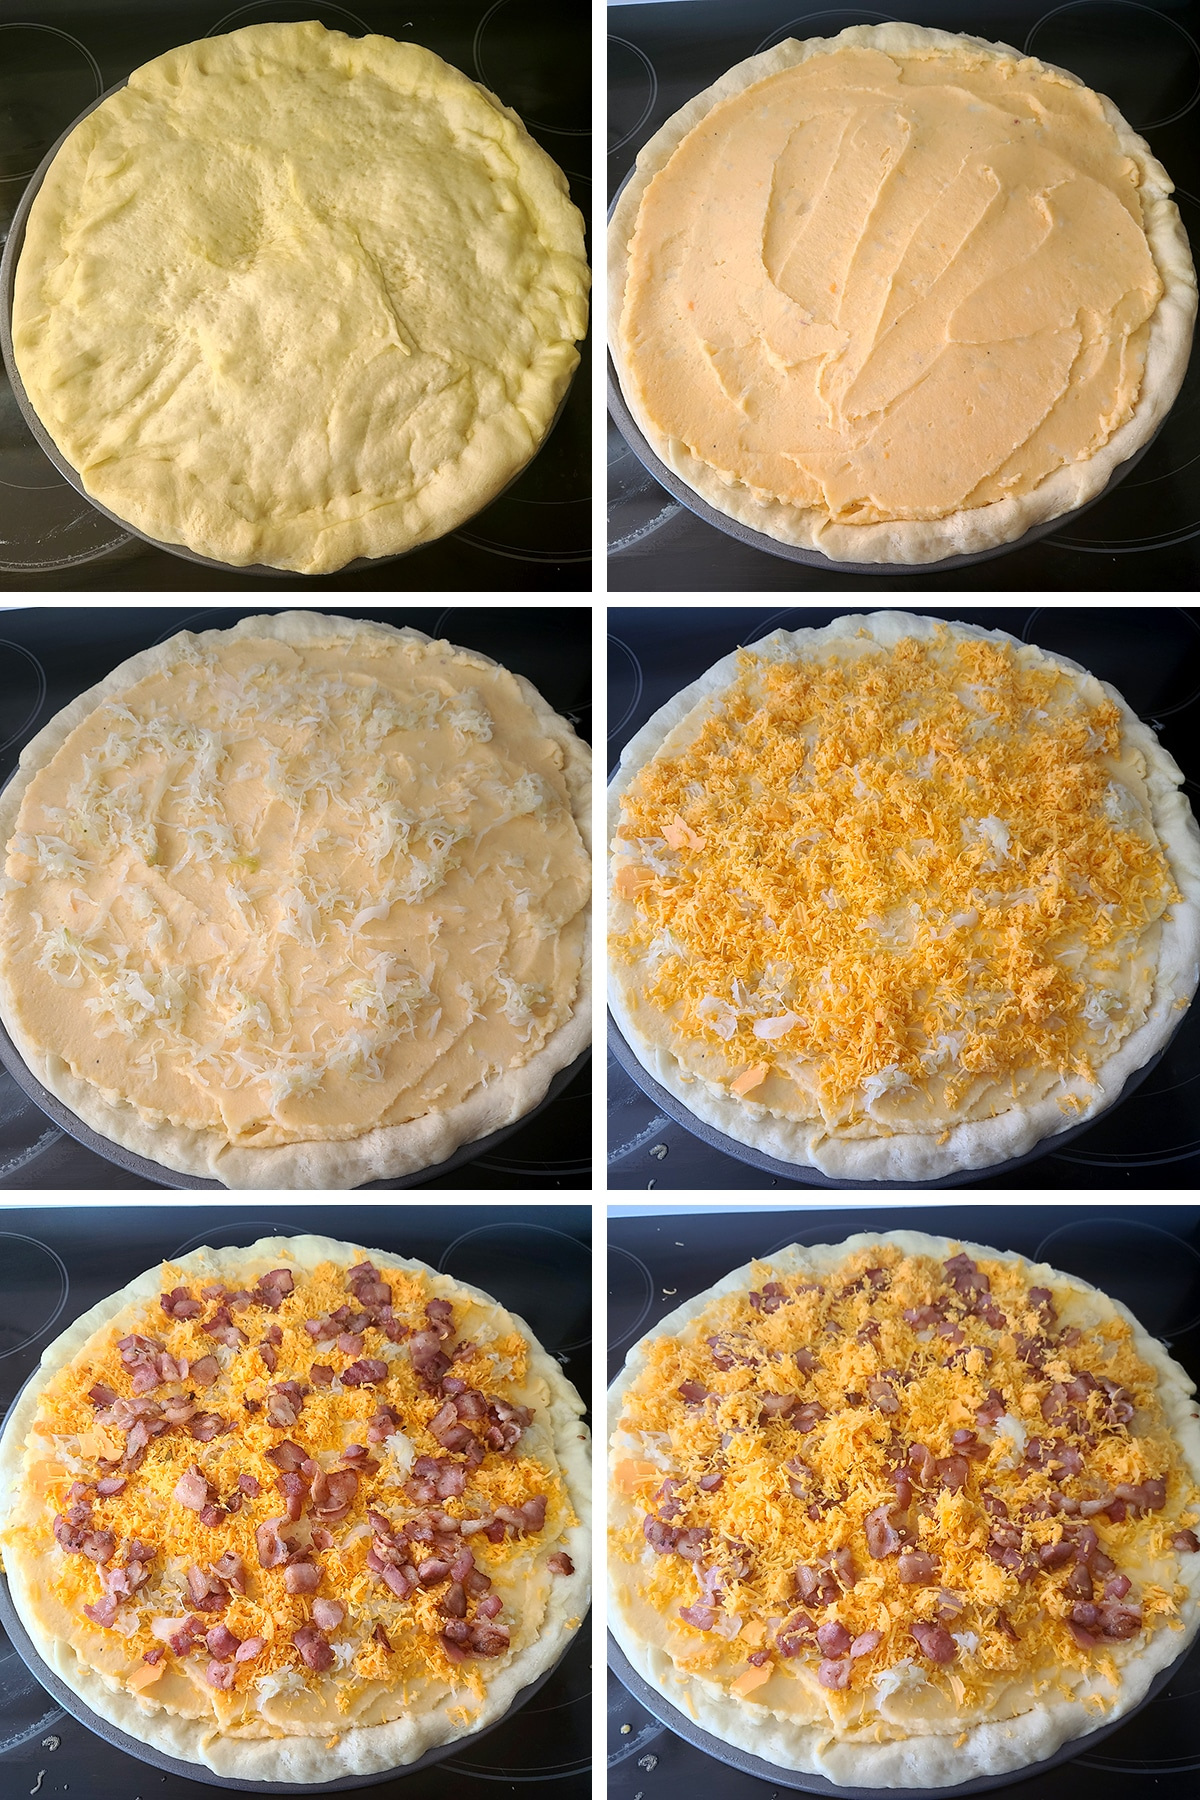 A 6 part image showing the progression of topping the pizza, as described in the post.